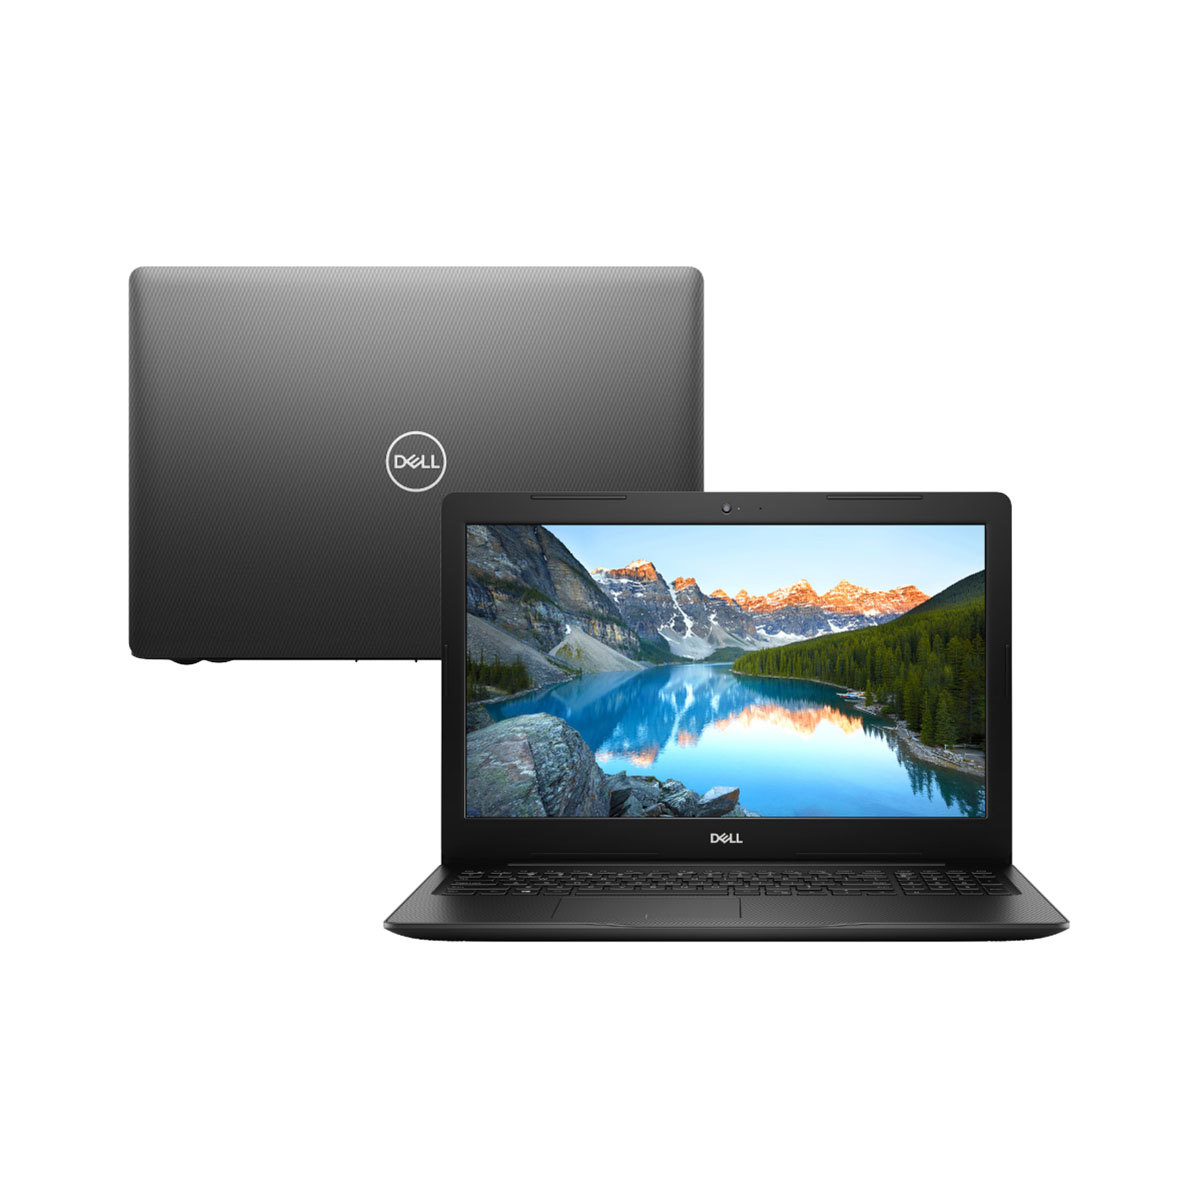 Notebook Dell Inspiron 3583 Core I7 8565u Memoria 8gb Hd Ssd 256gb Video Radeon 520 2gb Tela 15.6' Hd Sistema Linux